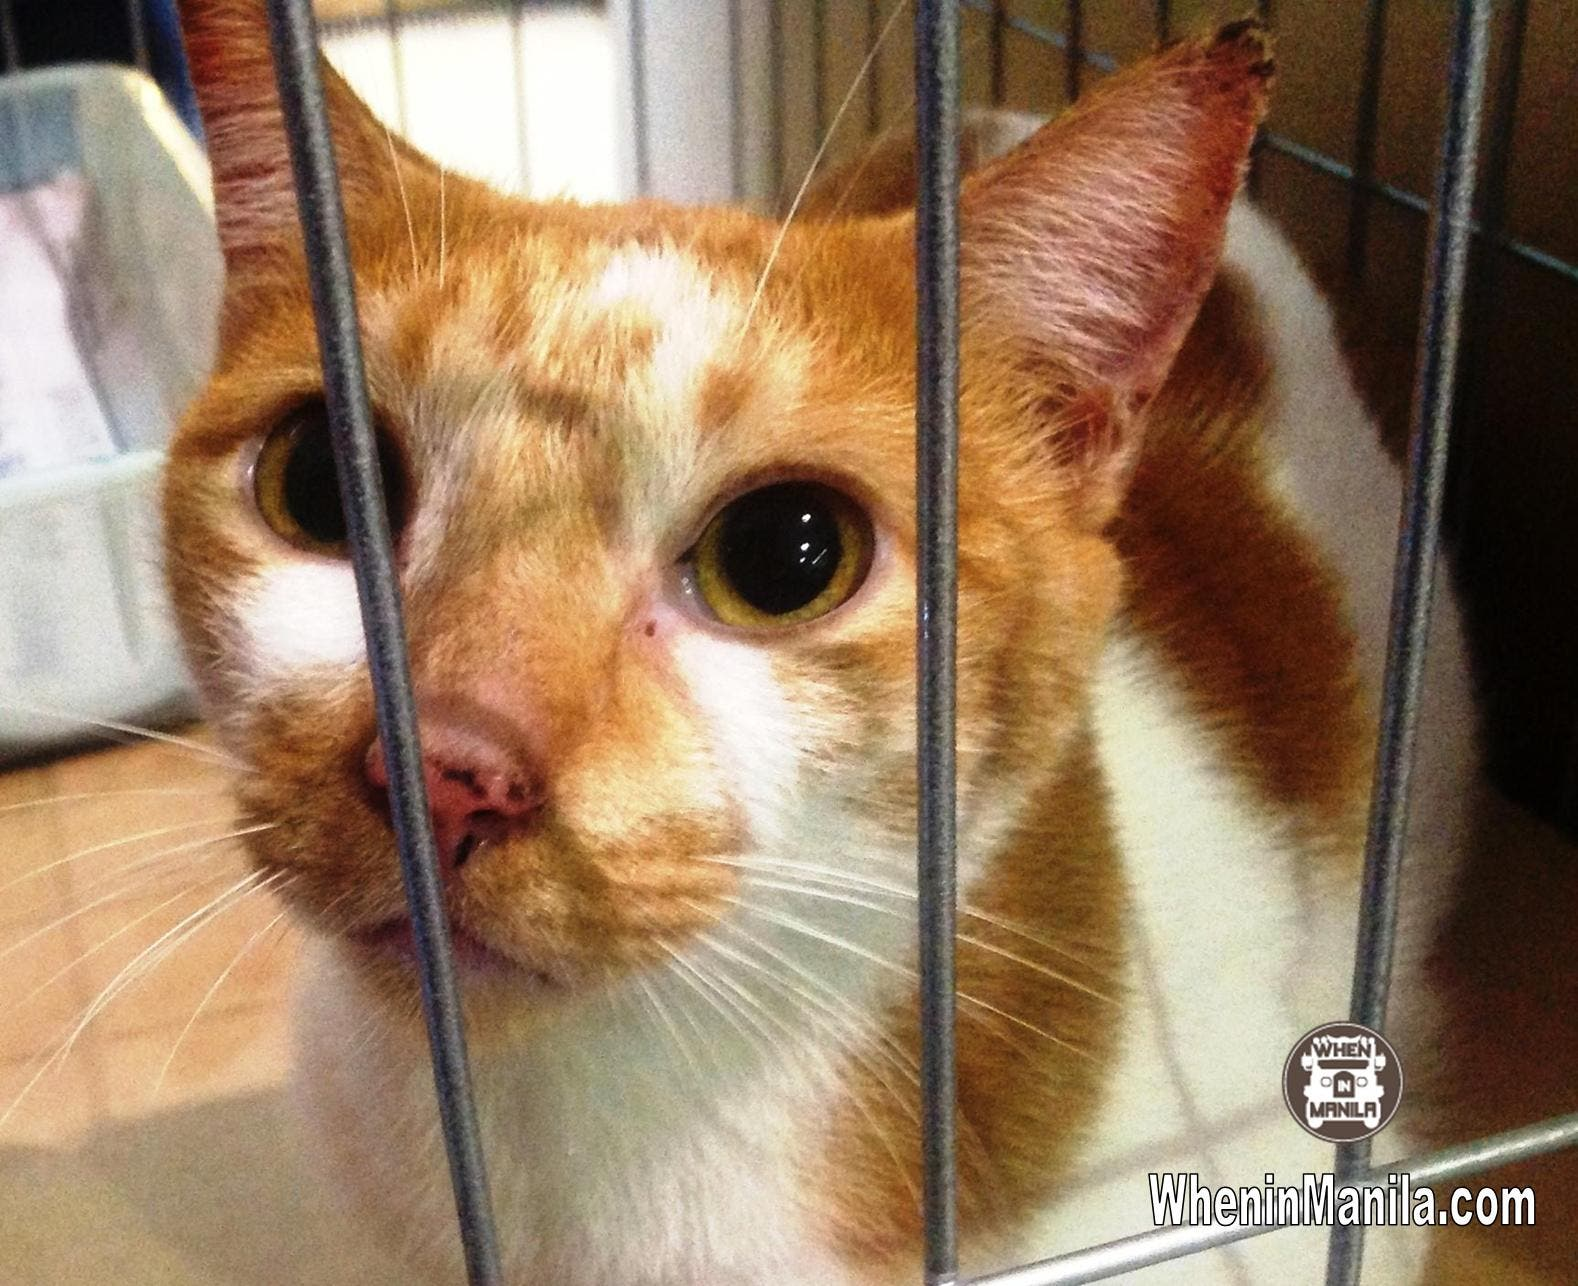 Animal Rescue and Welfare in the Philippines - Basu - Rescued Cat for Adoption